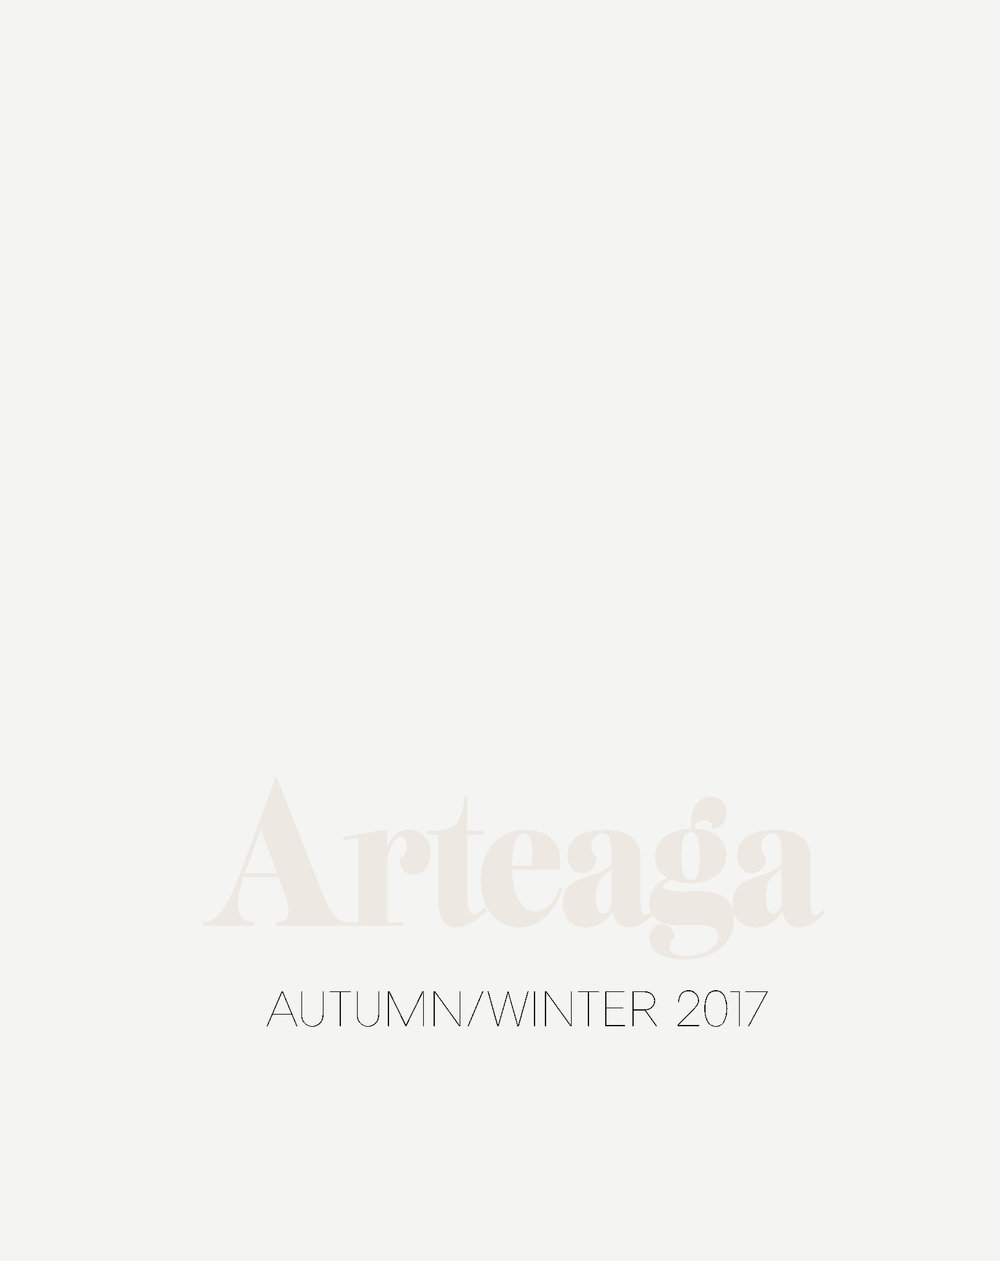 Arteaga AW 2017 Lookbook.jpg